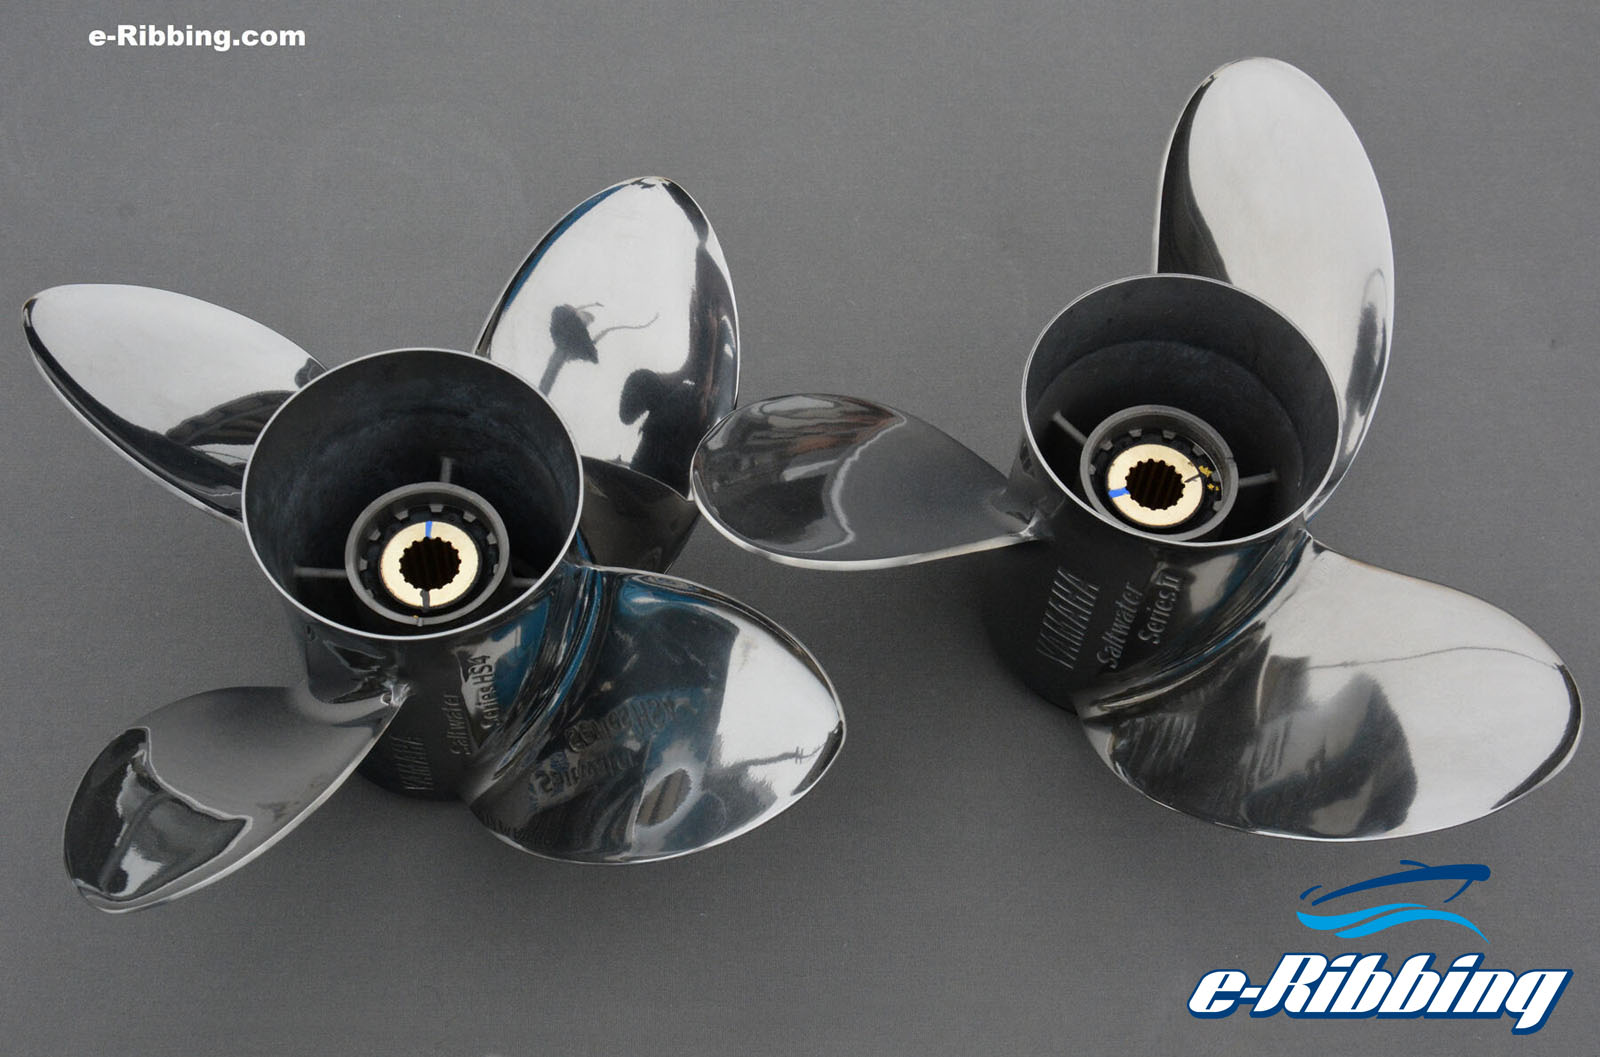 HS4 4-blade and the Saltwater Series II 3-blade Yamaha's propellers